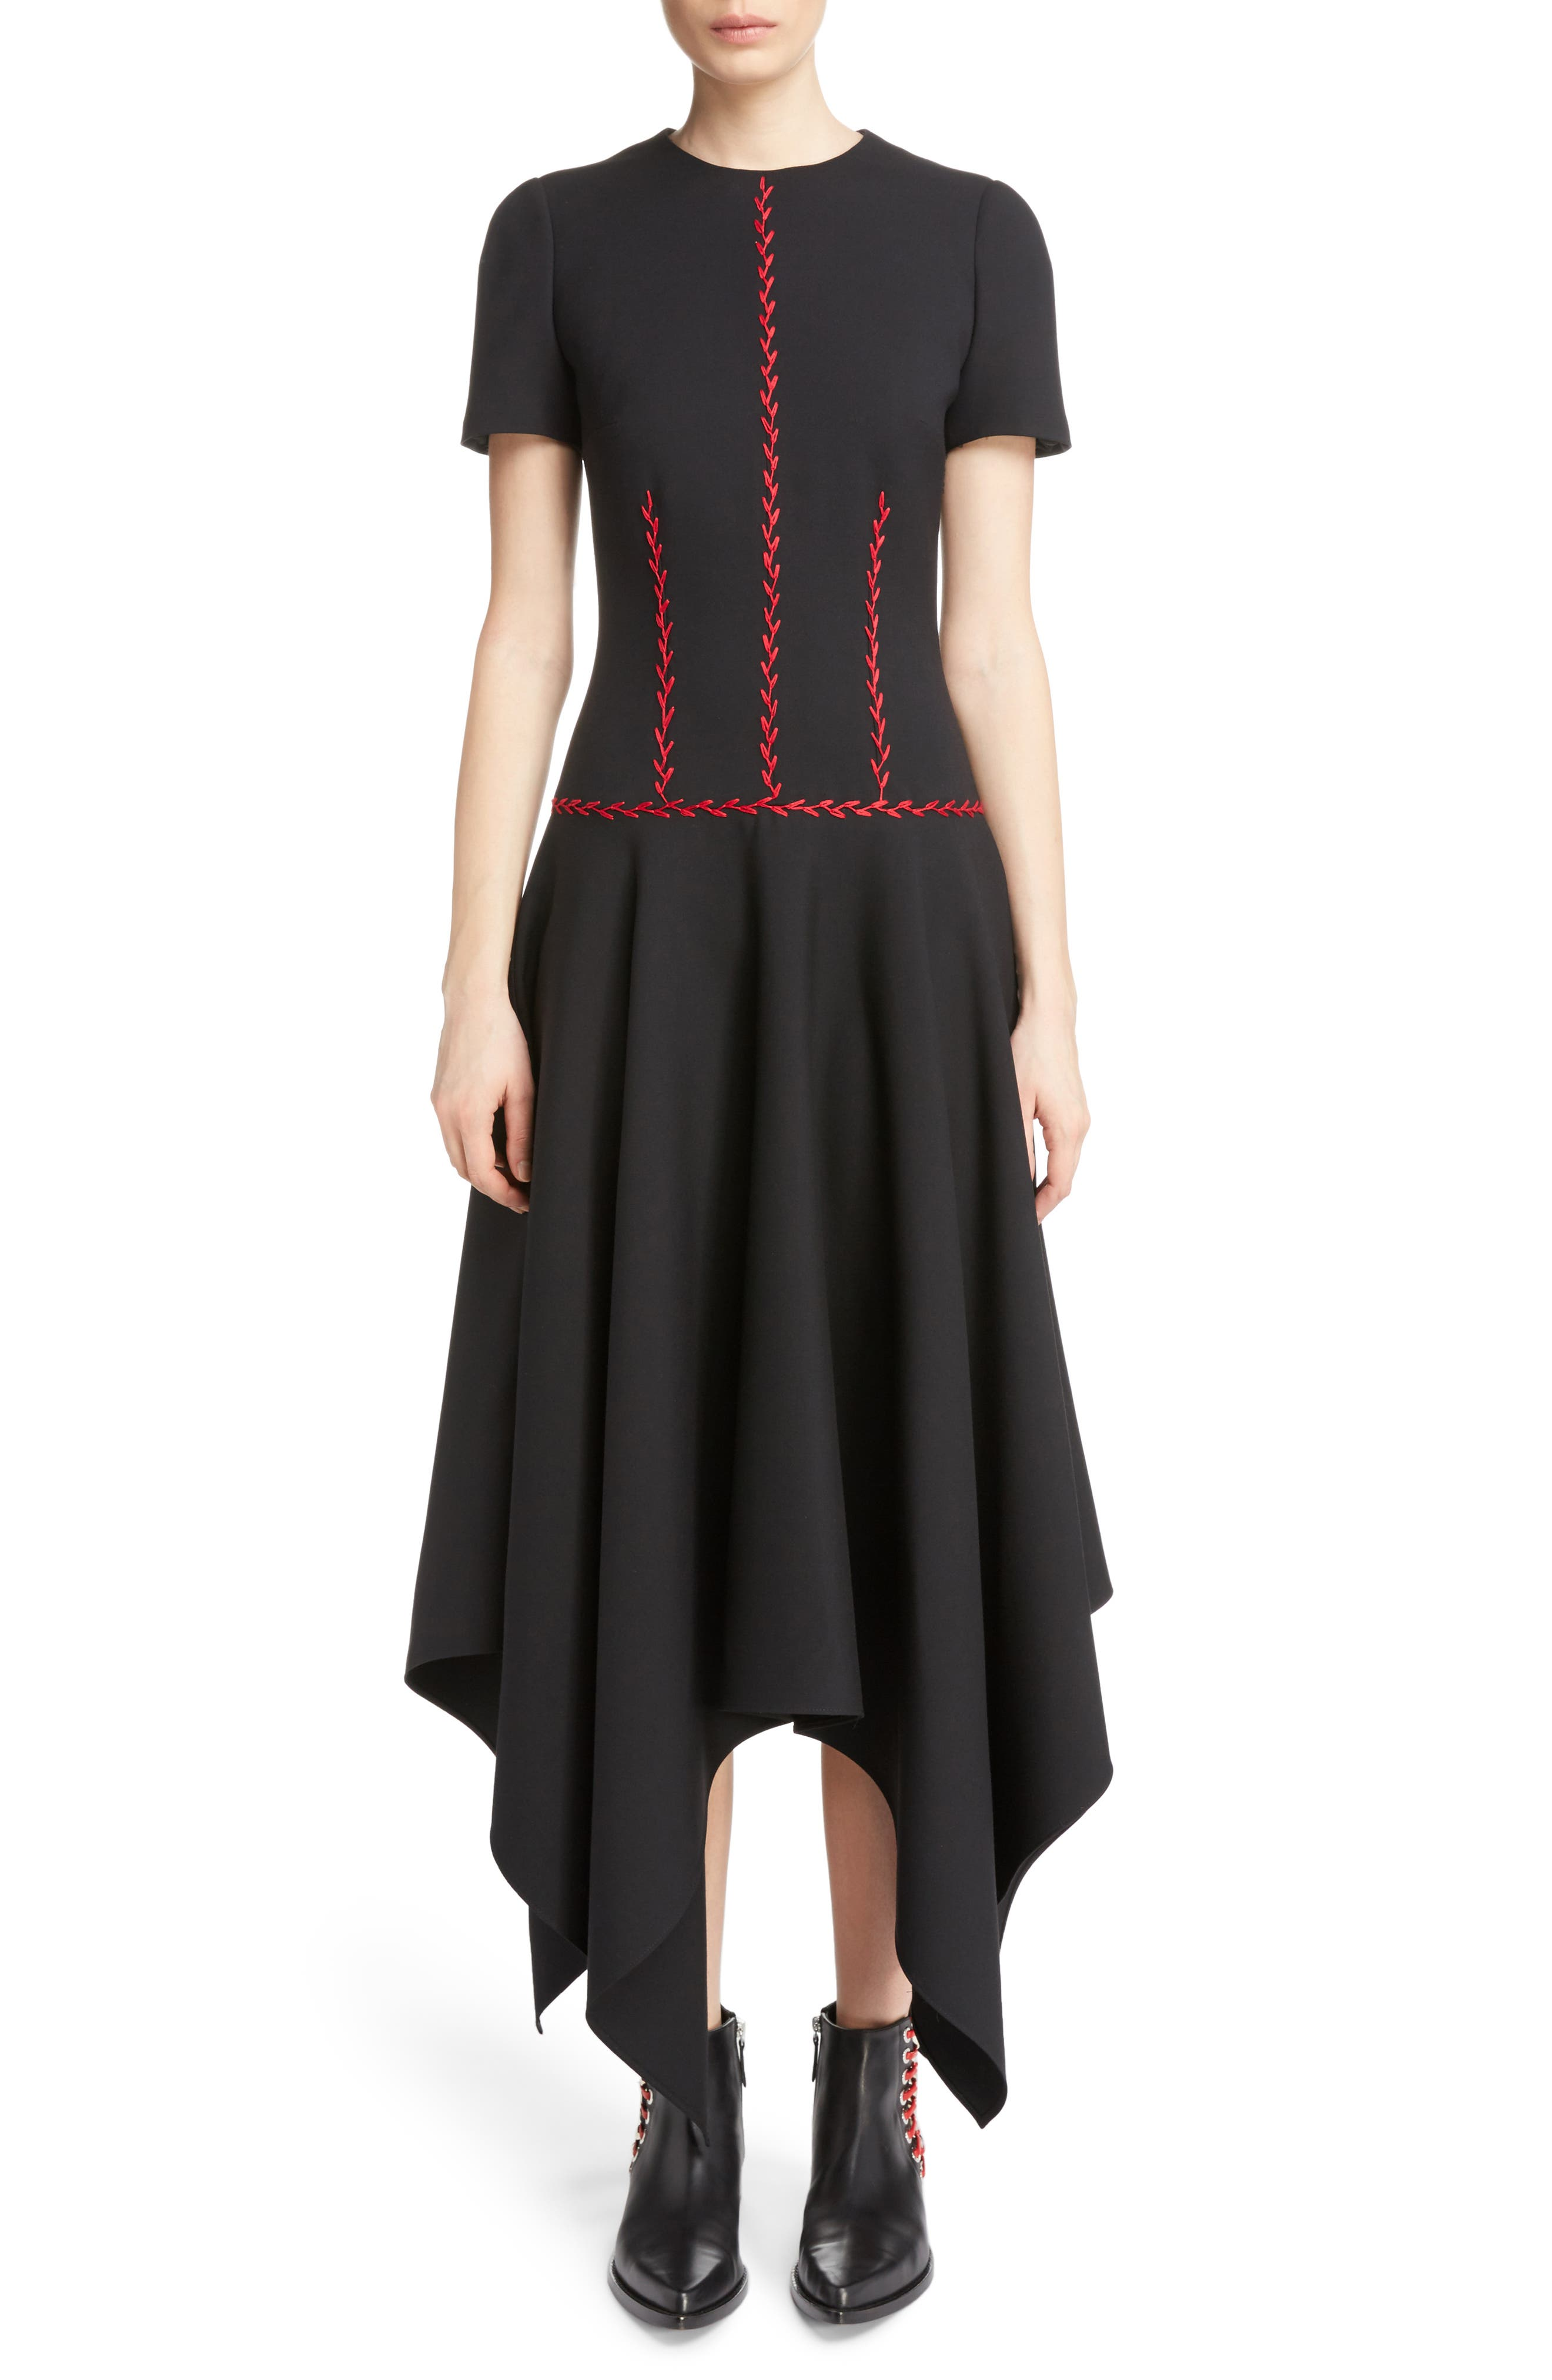 Alexander McQueen Stitched Handkerchief Hem Dress